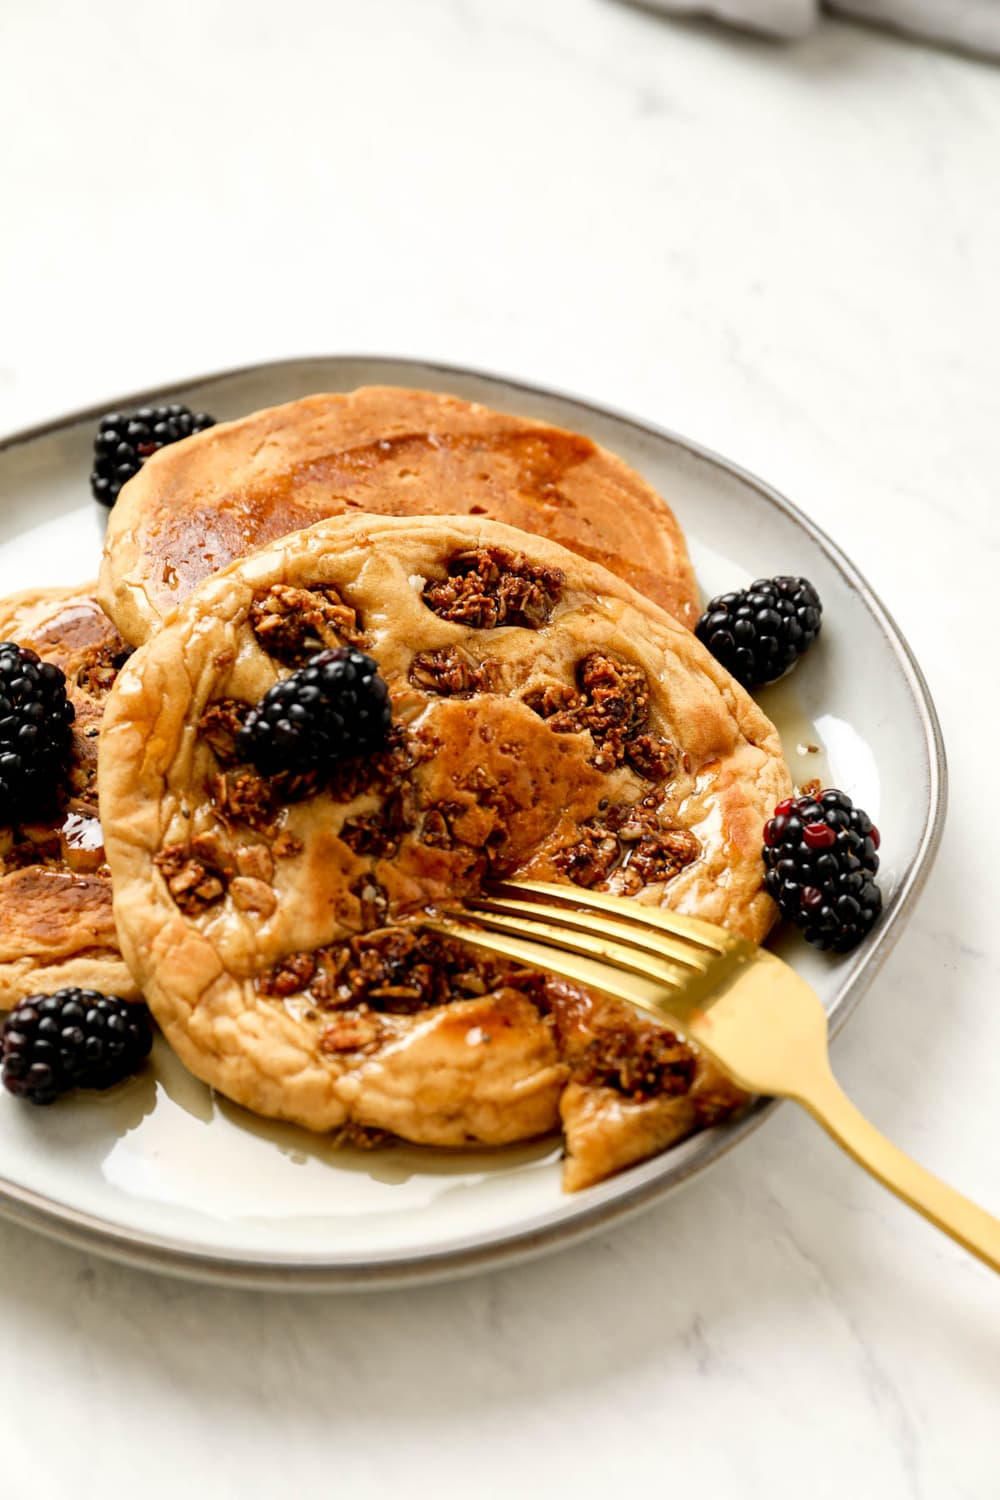 A stack of Gluten Free Granola Pancakes with maple syrup.